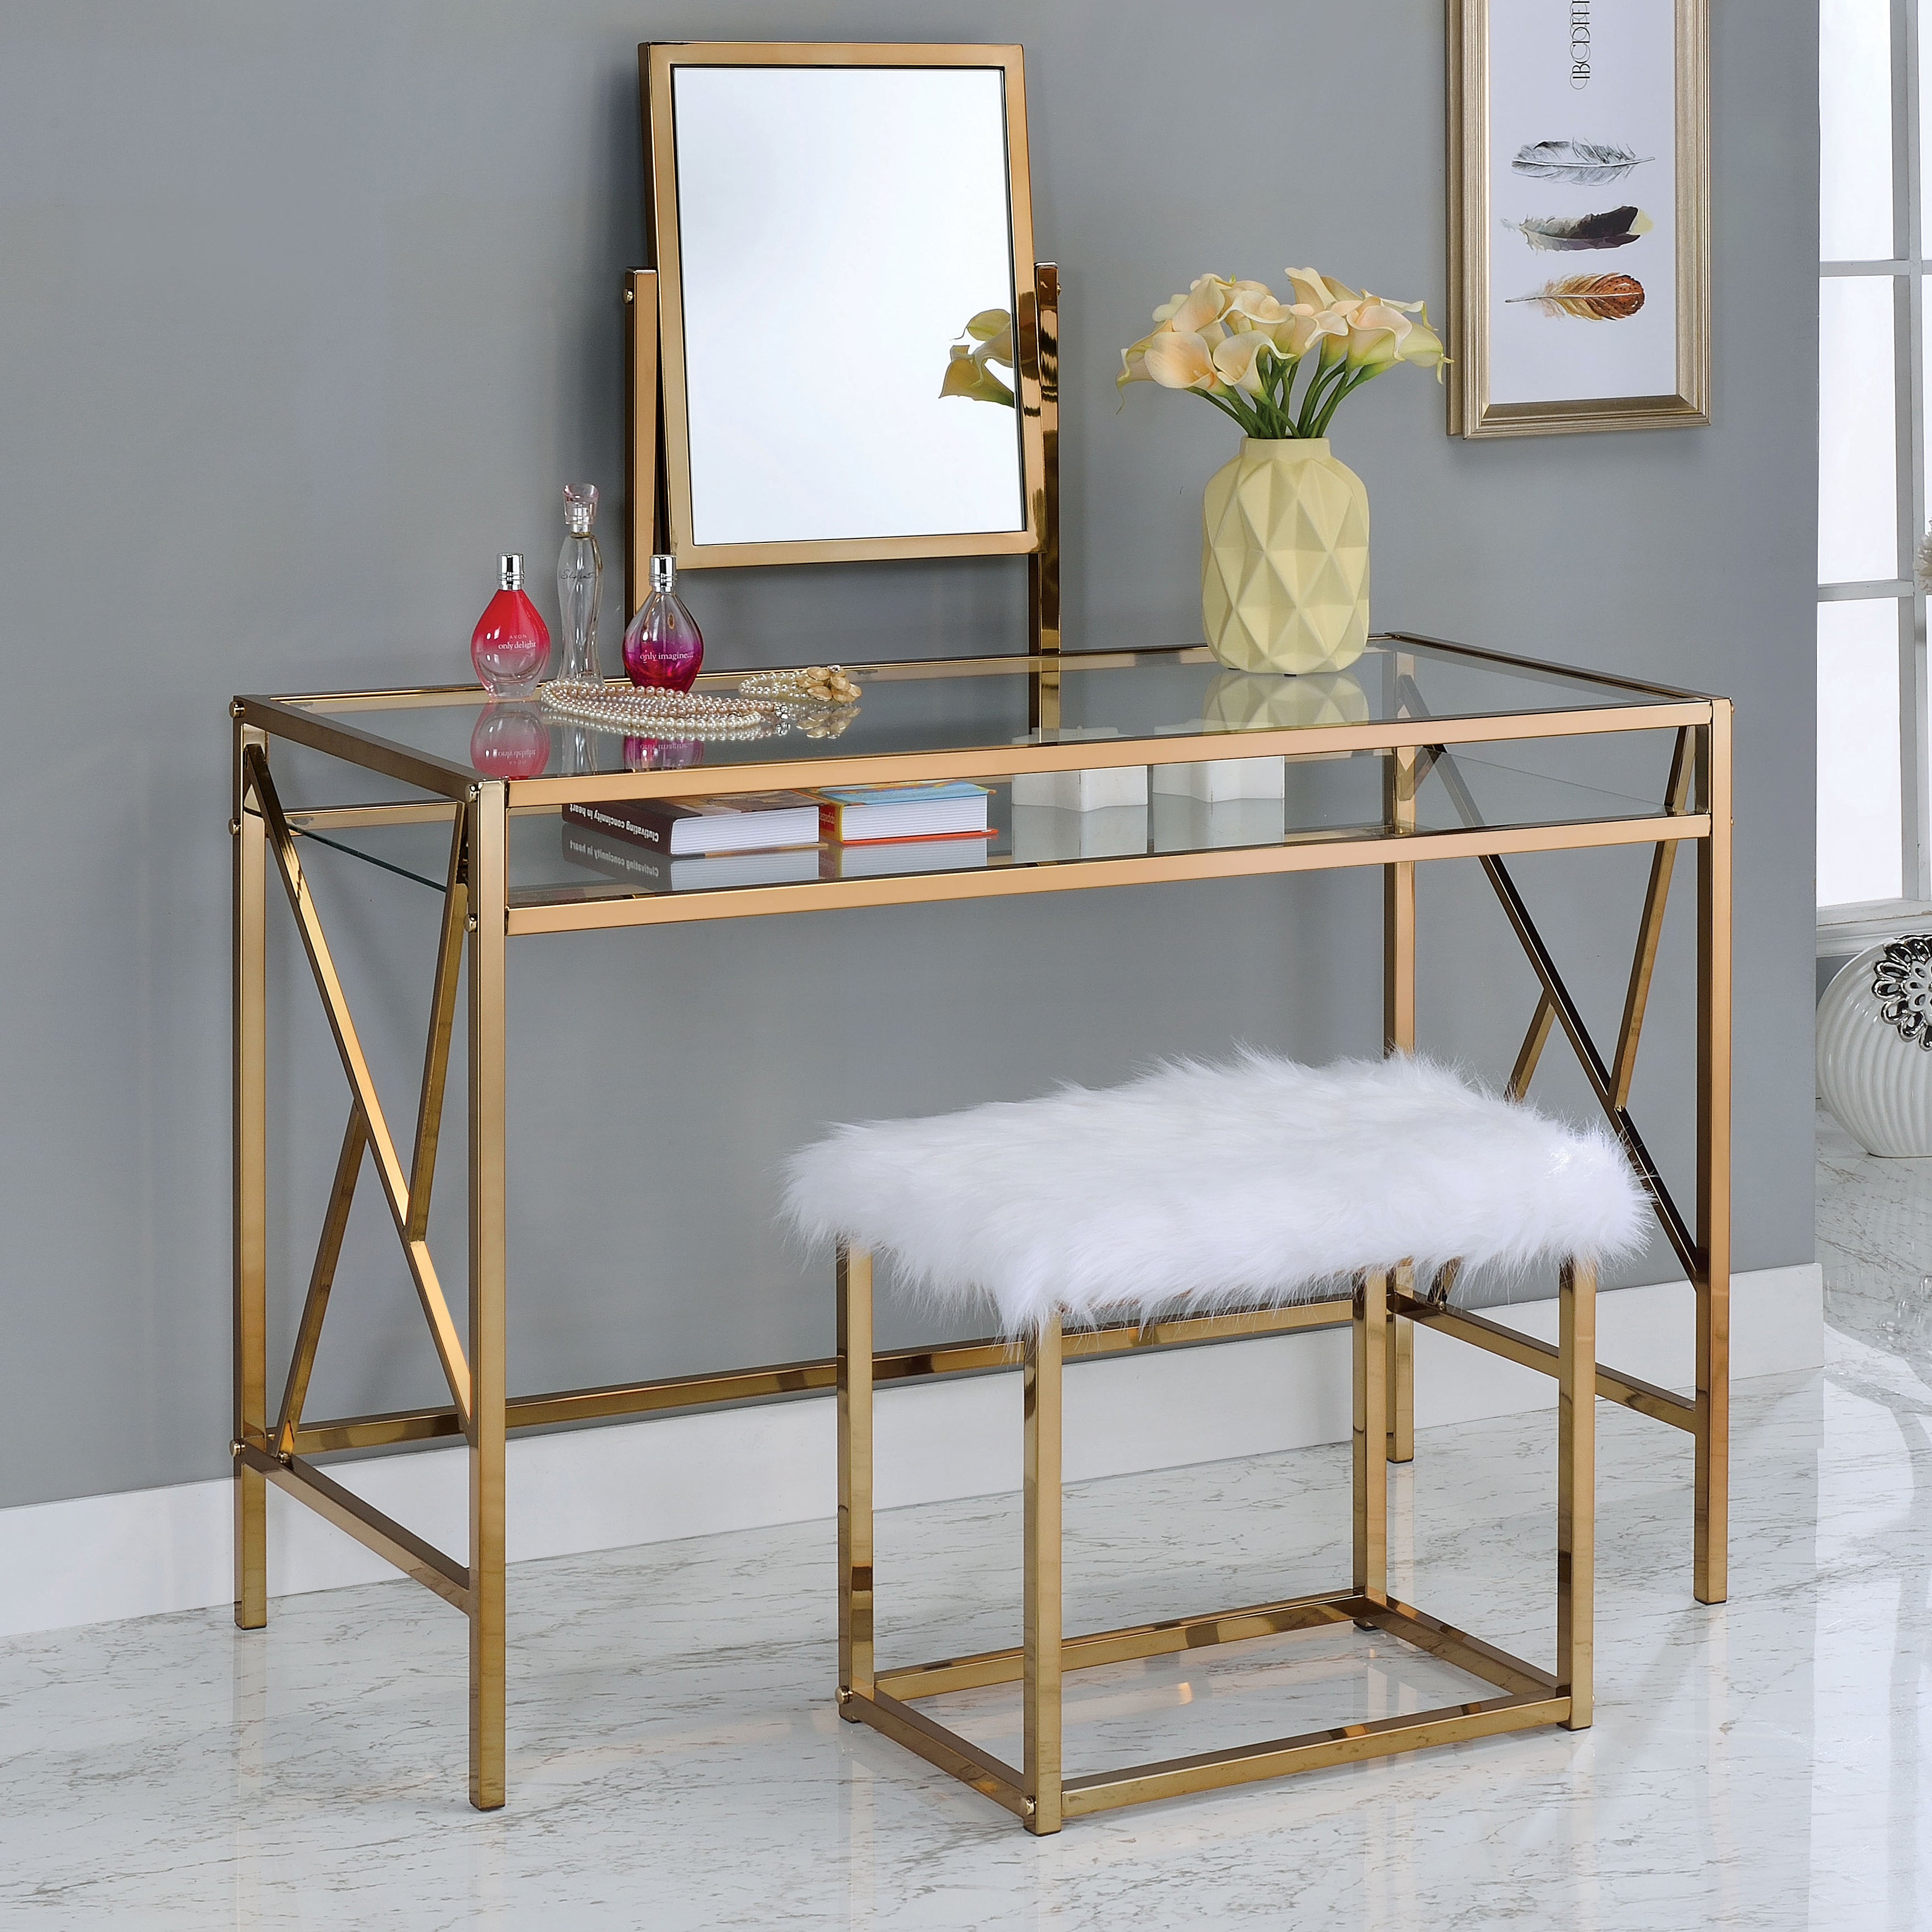 Two Piece Vanity Sets: Furniture Of America Ailees Contemporary Glam 2-piece